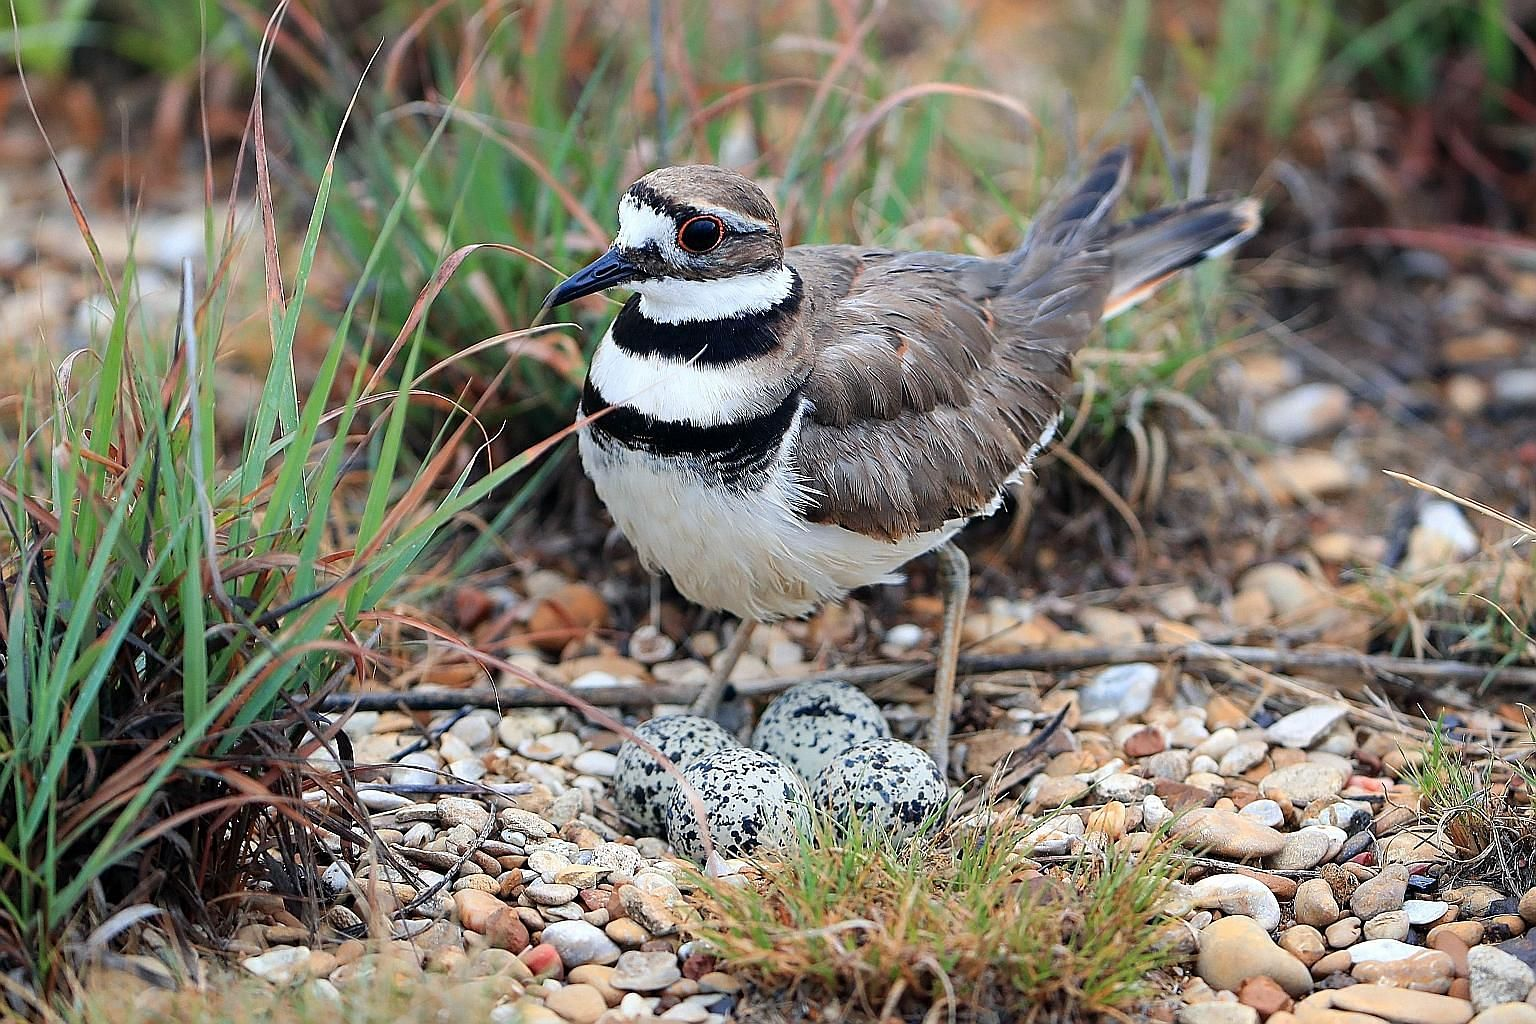 A killdeer (a bird that looks like this, left) laid four eggs in an Ottawa park where the main stage for an annual music festival, Bluesfest, is to stand, bringing preparations to an abrupt halt.